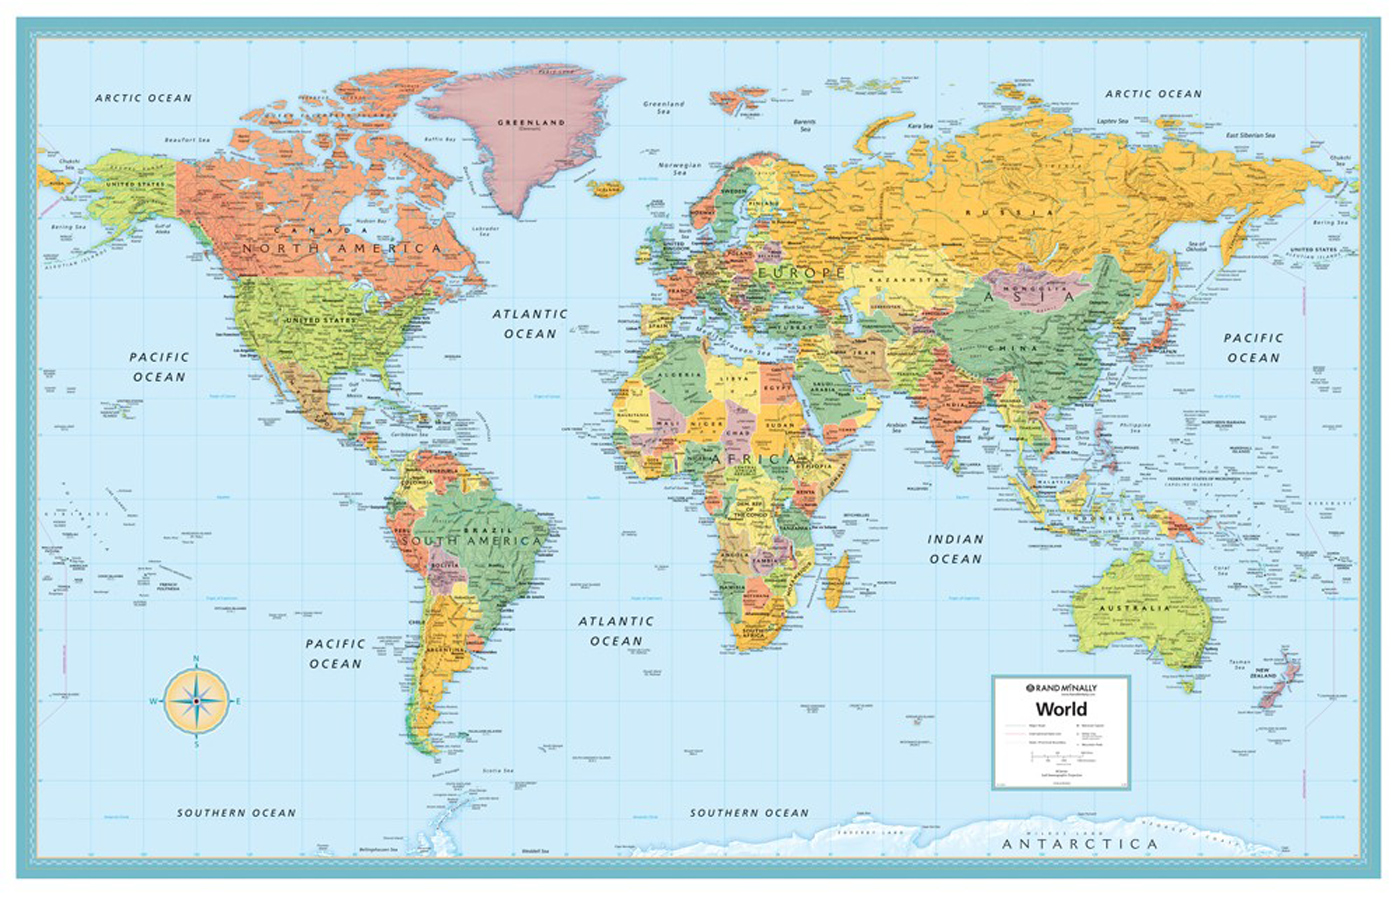 Rand McNally Deluxe Signature World Map Wall Poster - World map p